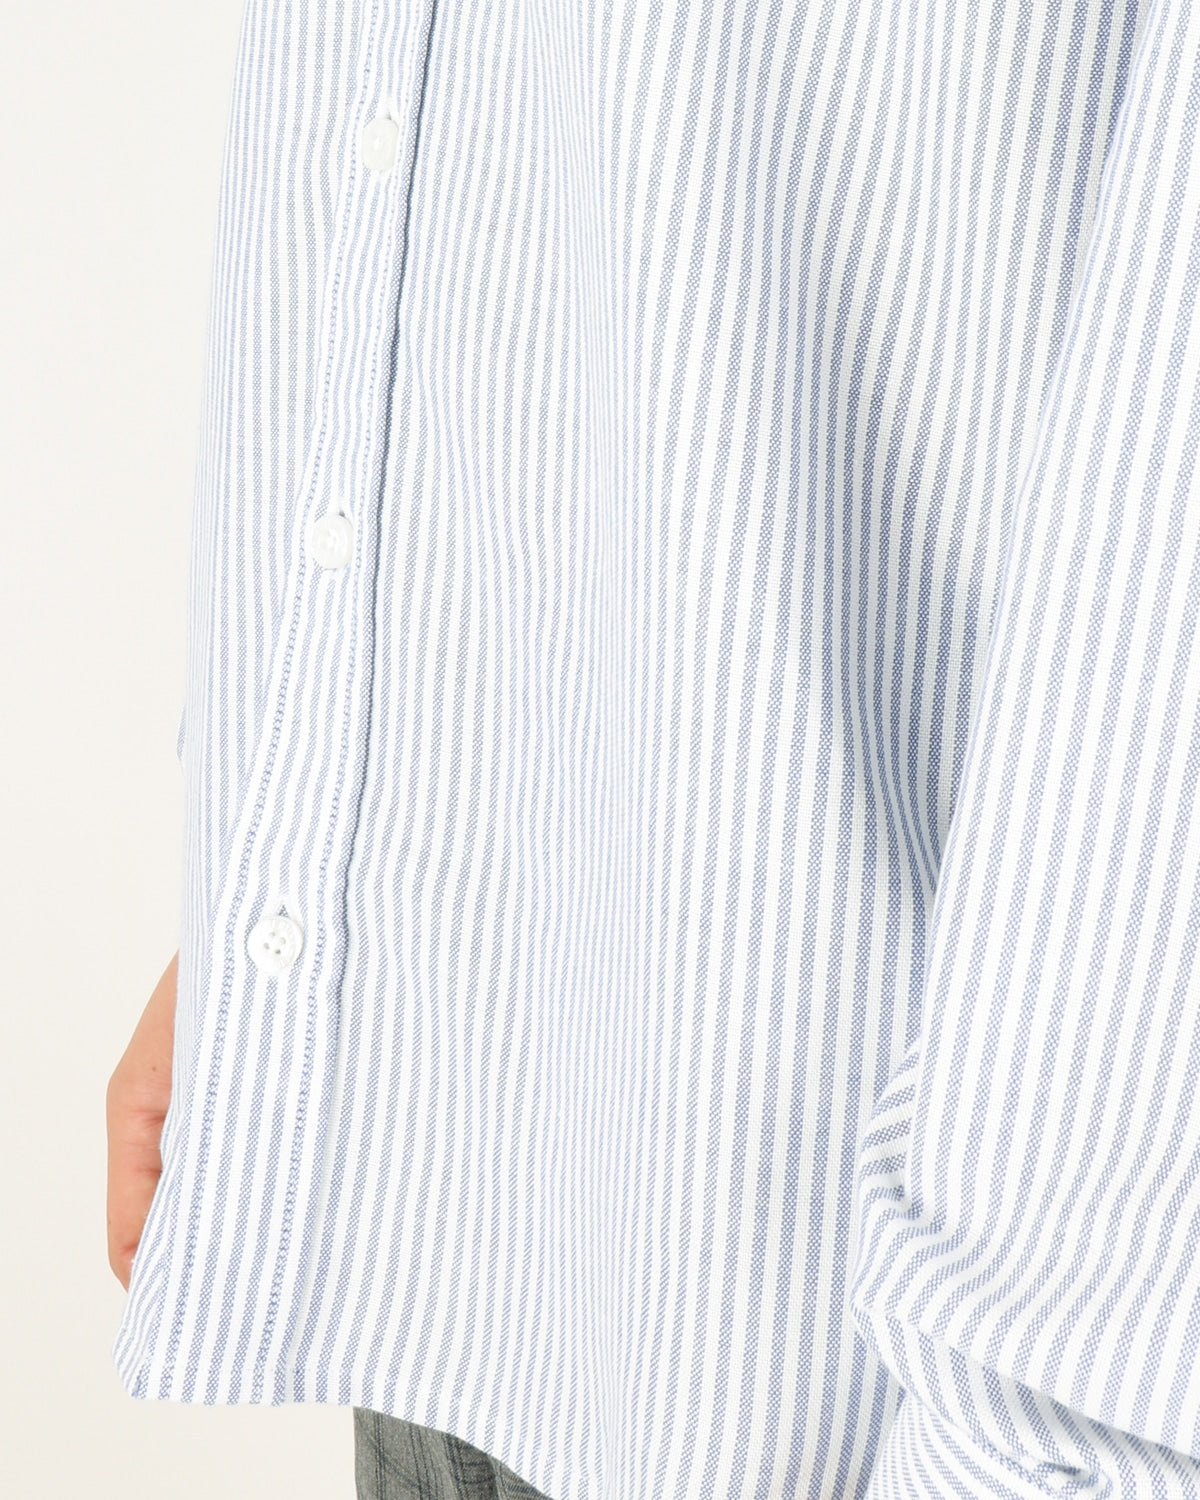 libertine libertine_hunter shirt_white w. blue stripes_4_4